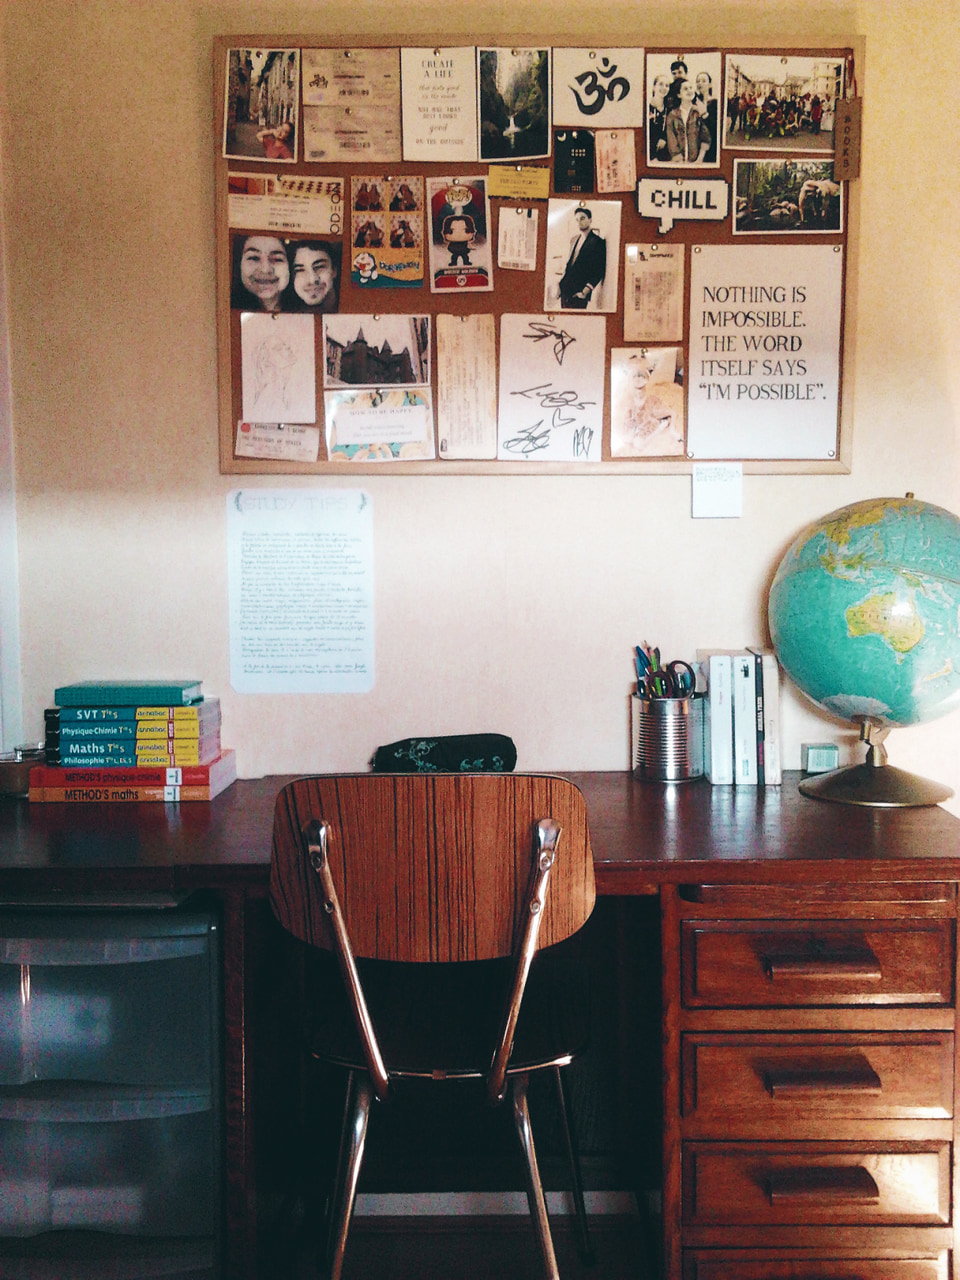 study habits, stationery, study desk and finals